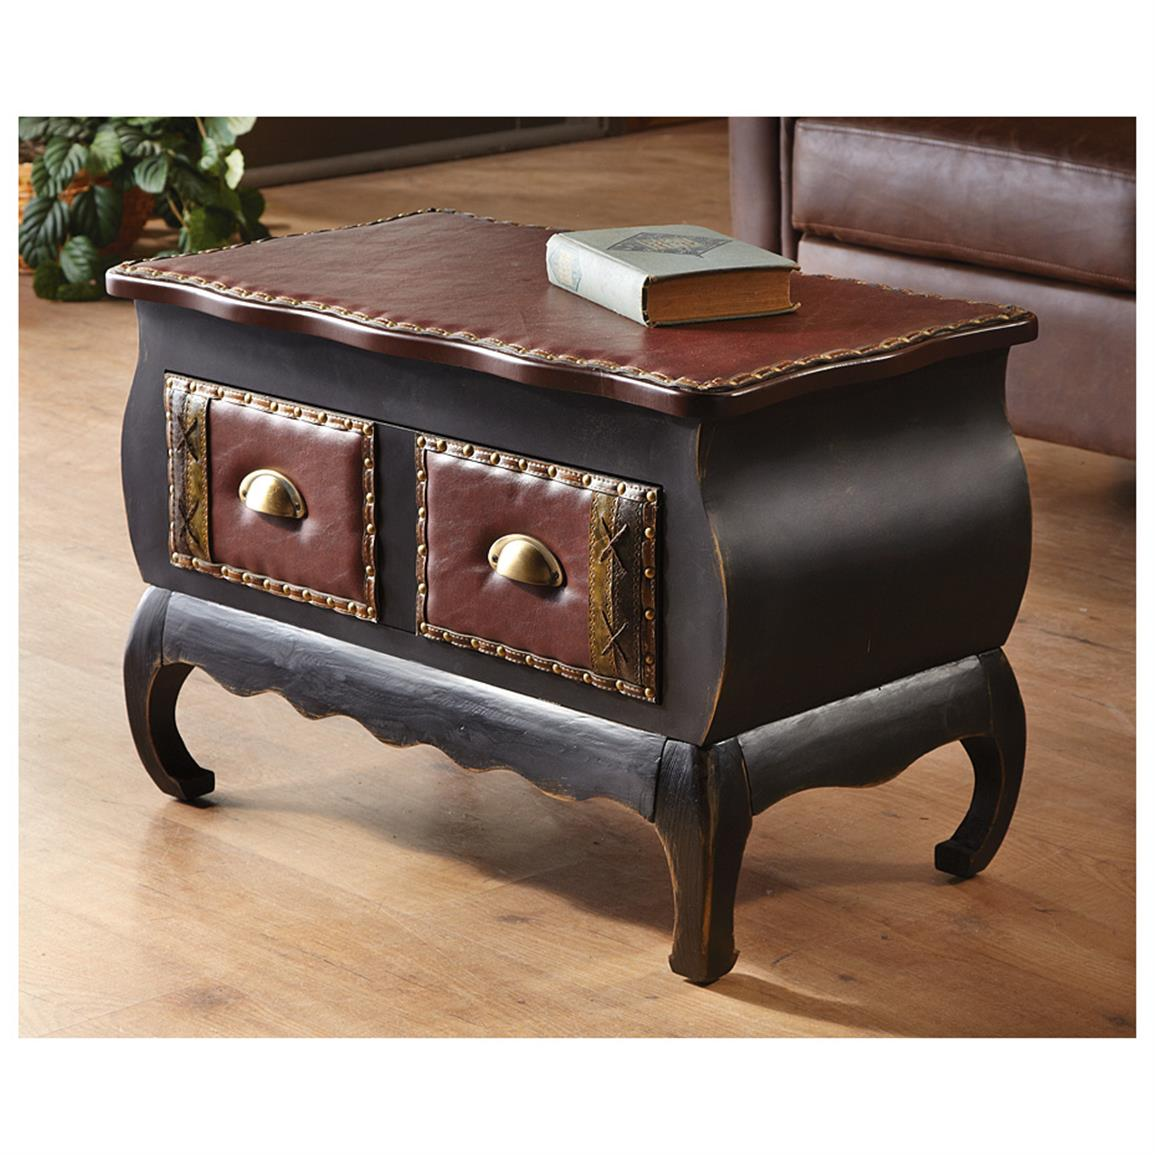 furniture living room accent table rolldon design ideas varnished wood floor tile brown leather comfy sofa coffee top skirt with drawer accen round skirts contemporary lamp